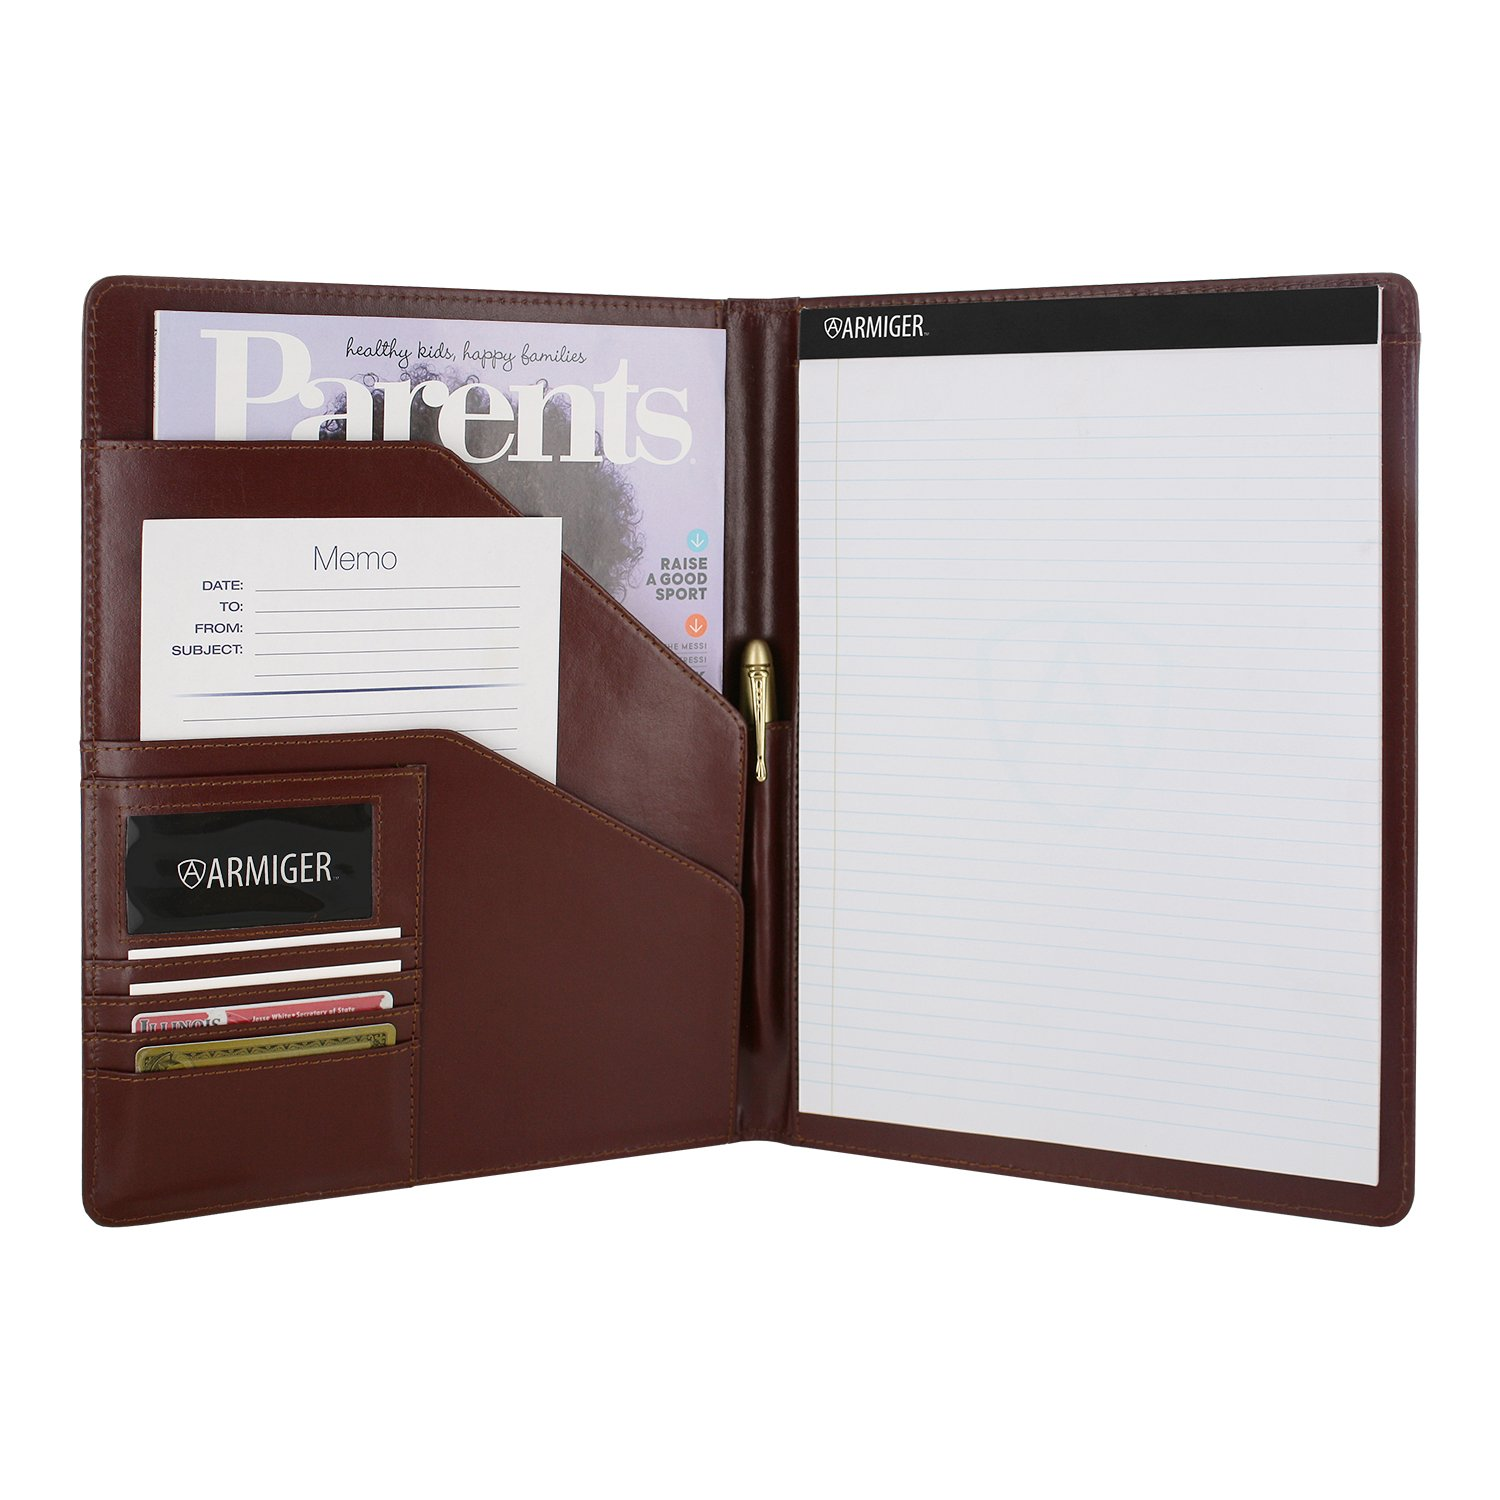 Armiger Executive Bonded Leather Professional Business Document and Business Card Holder Resume Interview Portfolio Pad folio Organizer with Letter Size Writing Notepad - British Tan